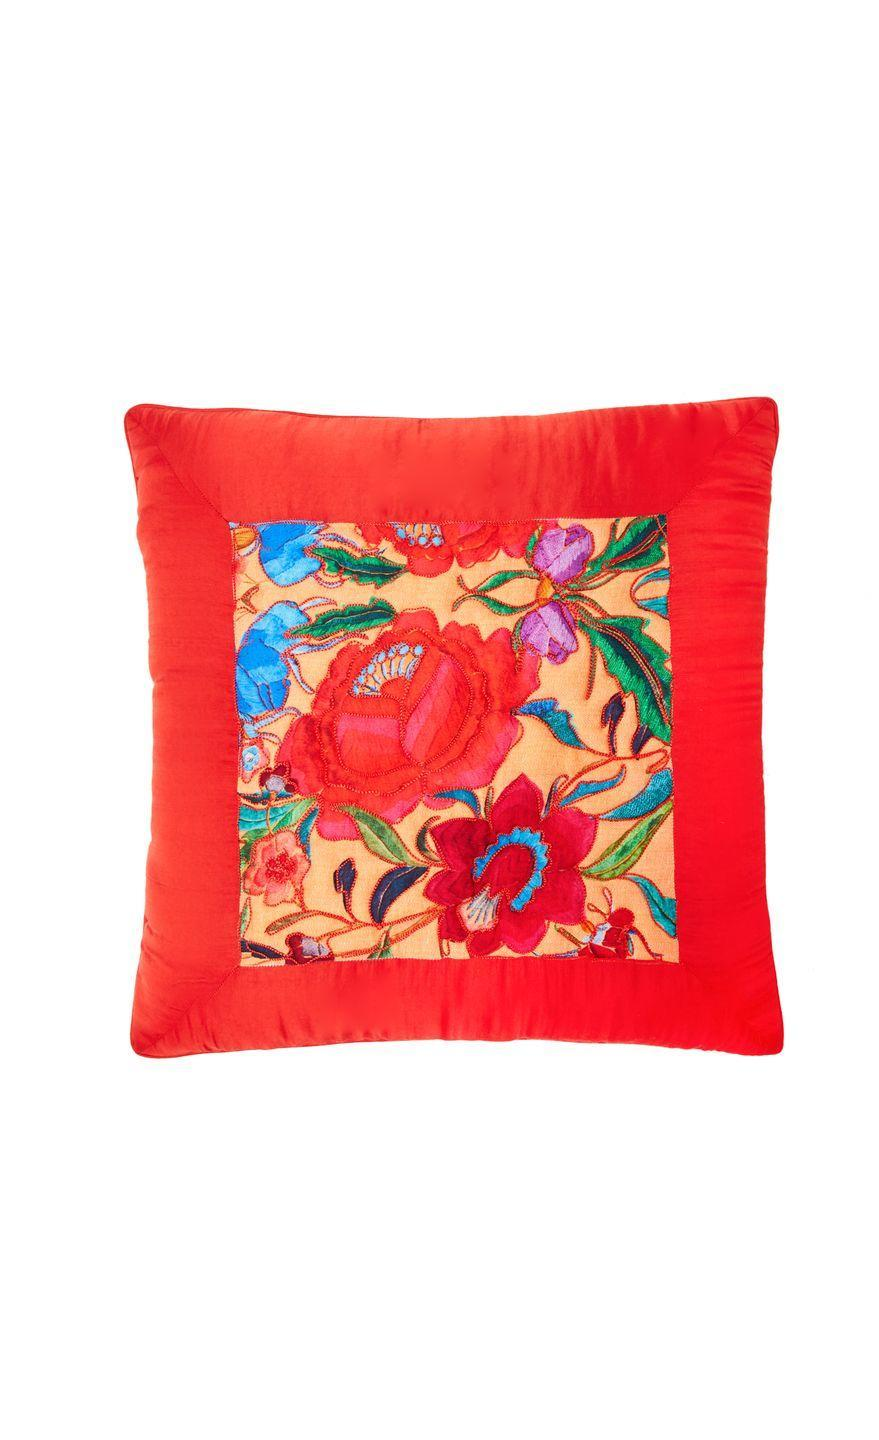 """<p>The Somerset-based designer has translated her signature prints and brightly hued patterns into a range of embroidered homeware, such as this cheery floral embroidered cushion. KP</p><p>£145, <a href=""""https://www.temperleylondon.com/lotus-print-embroidered-cushion-coral-mix.html"""" rel=""""nofollow noopener"""" target=""""_blank"""" data-ylk=""""slk:Alice Temperley Homeware"""" class=""""link rapid-noclick-resp"""">Alice Temperley Homeware</a></p>"""